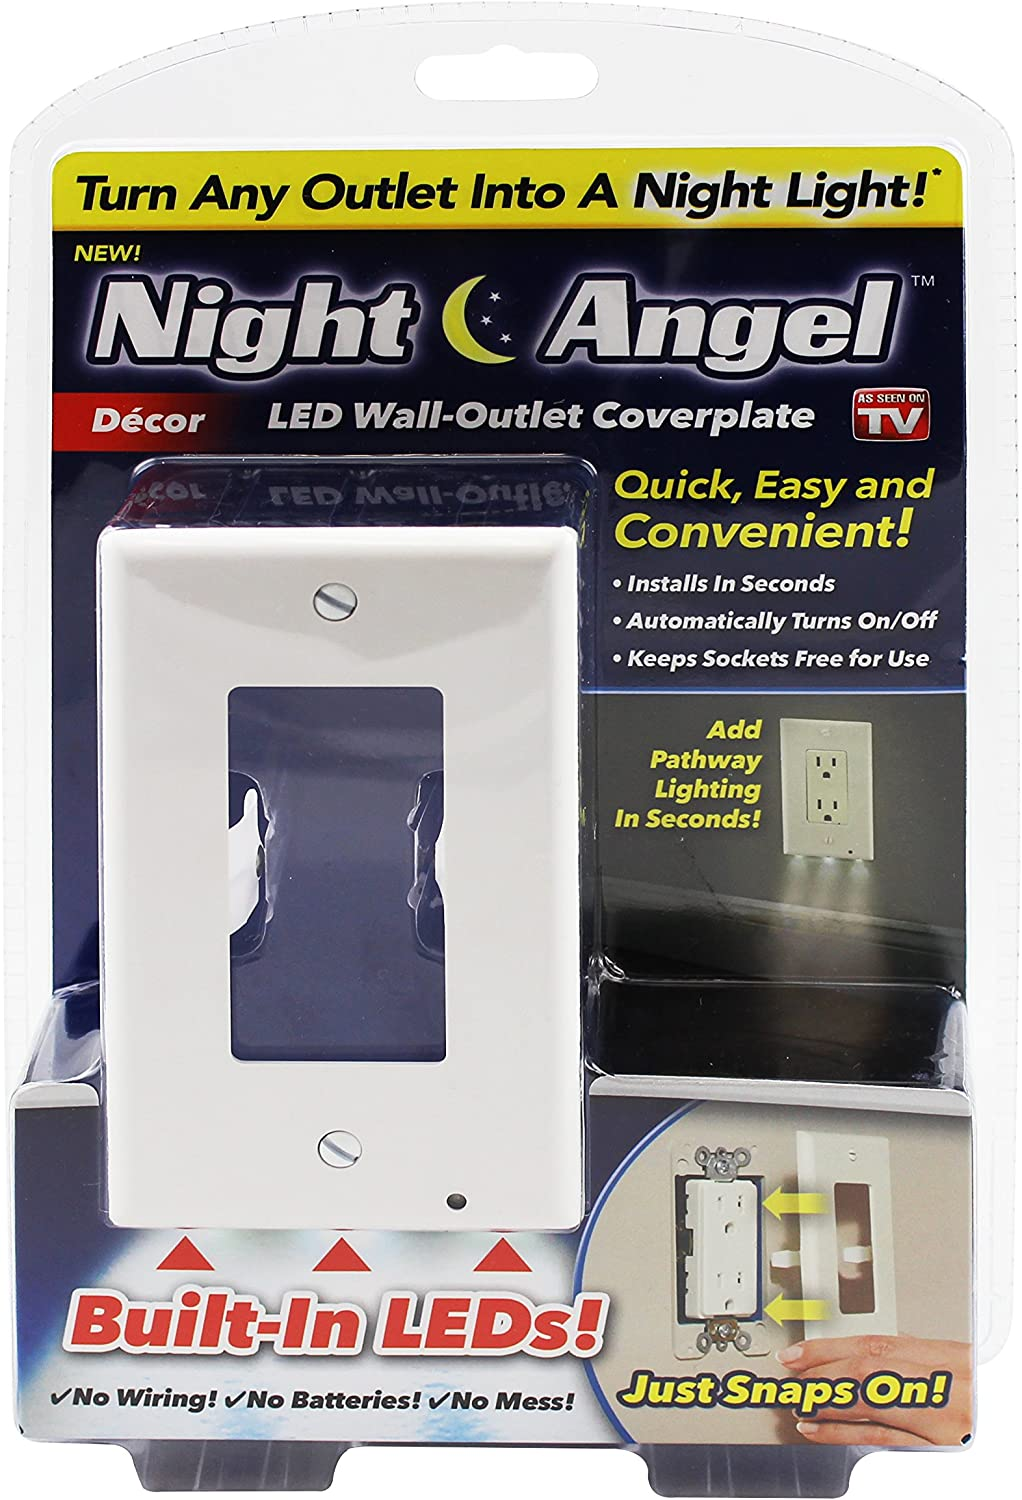 Night Angel Lighted Wall Outlet Coverplate With Automatic Light Sensor And Built In Led Guidelights For Square Outlets Decor Night Lights Amazon Canada